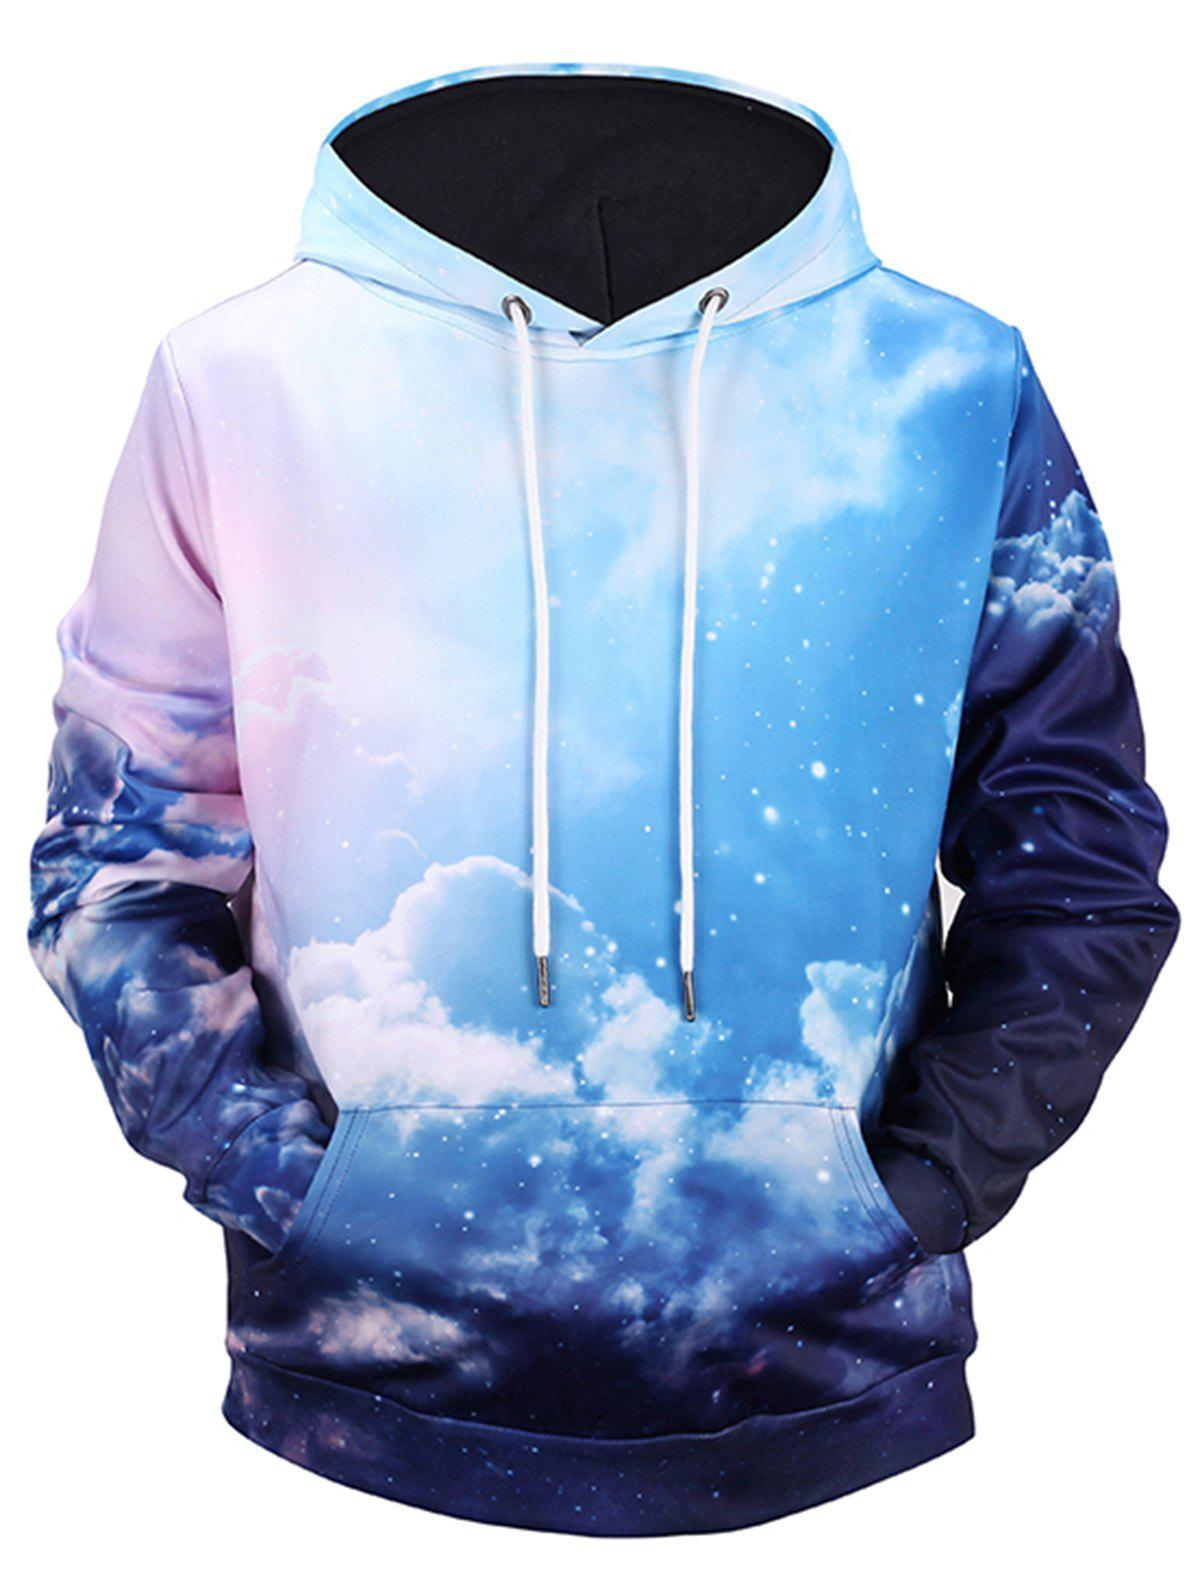 Kangaroo Pocket Sky Clouds 3D Print Hoodie clouds without rain